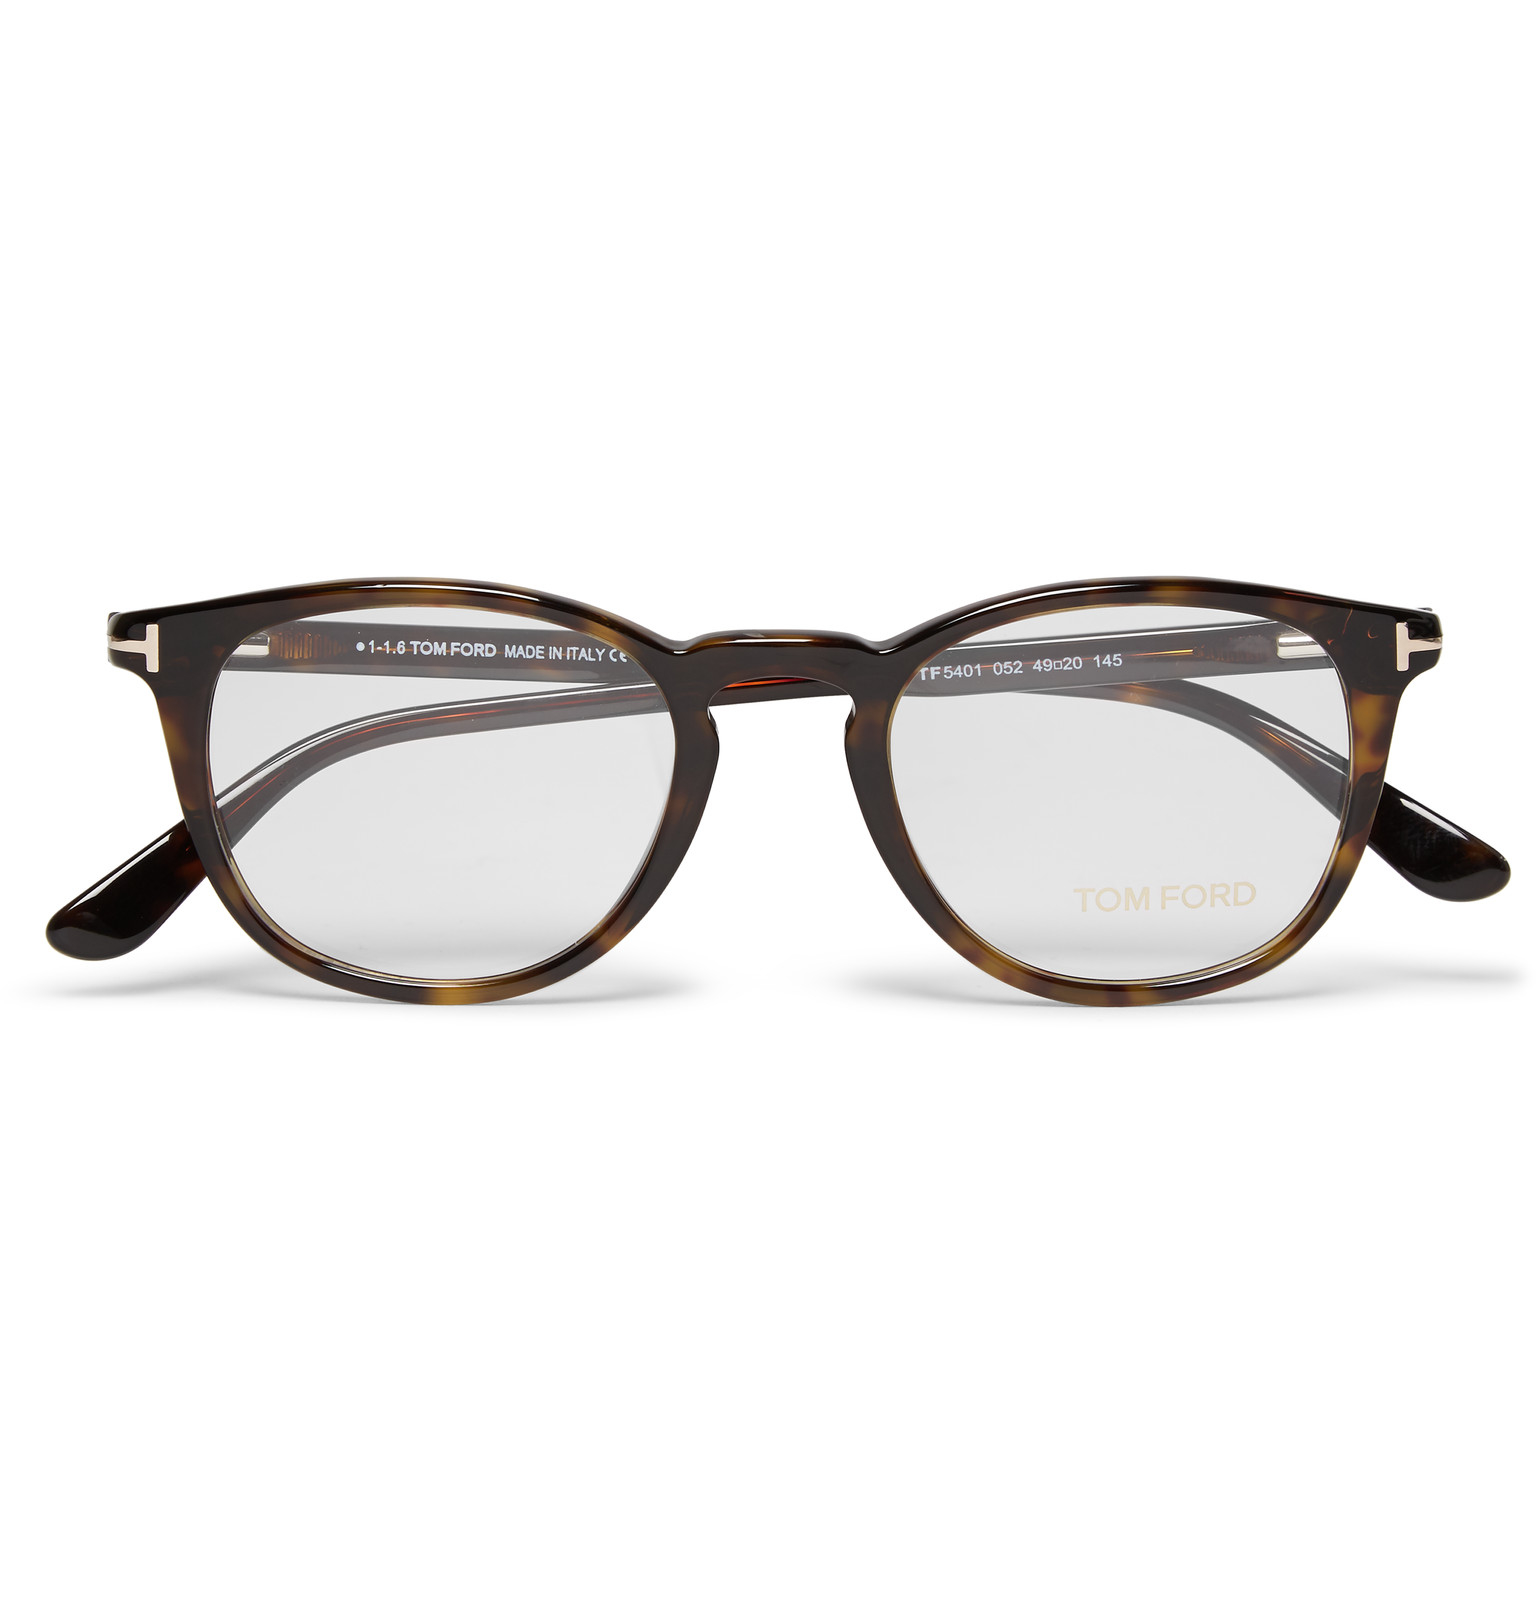 6f3a75edc55 Tom Ford Round-frame Tortoiseshell Acetate Optical Glasses in Brown ...